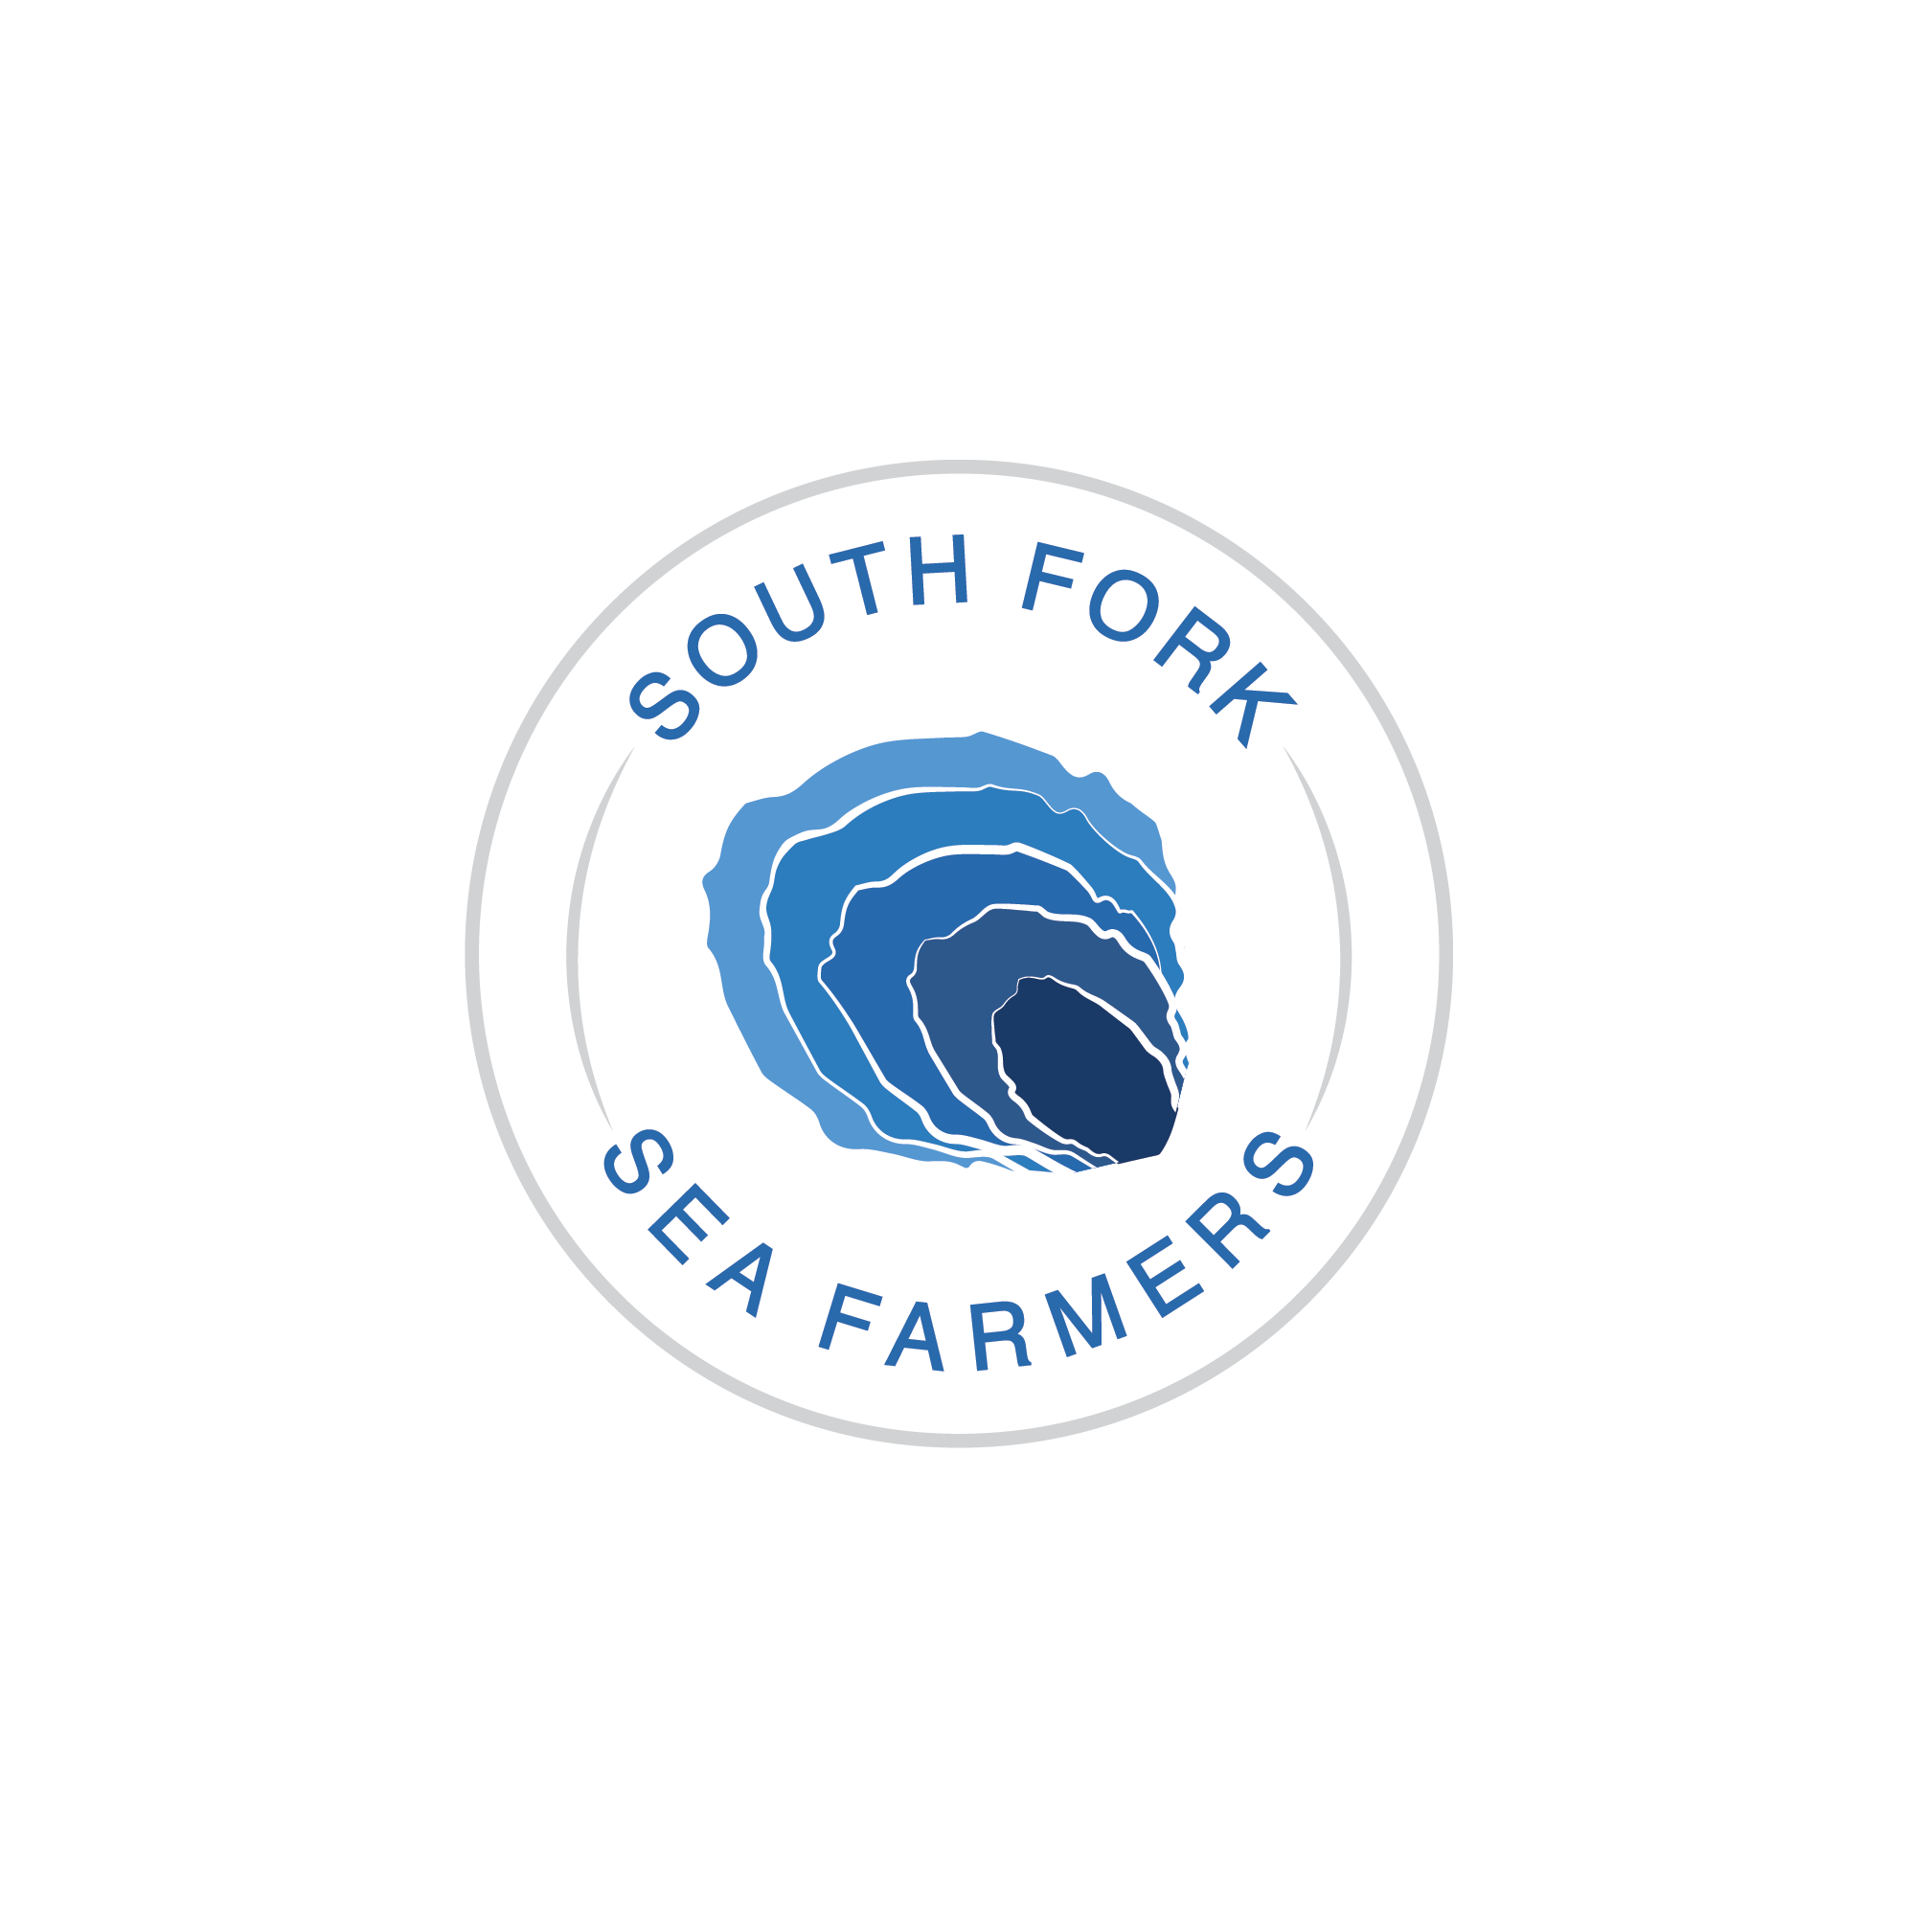 South fork Sea Farmers (SF²) - SF² works collaboratively with the East Hampton Town Shellfish Hatchery to expand and broaden educational programs and encourage other residents to be stewards of their marine environment.SF² is on a mission to educate and raise awareness of the importance of sustainable marine aquaculture and to inspire constructive action programs.Our goal is to promote and encourage more public oyster gardening which keeps our waters clean, provide habitat for marine life and improves our overall ecosystem. South Fork Sea Farmers is a a 501(c)(3) organization.